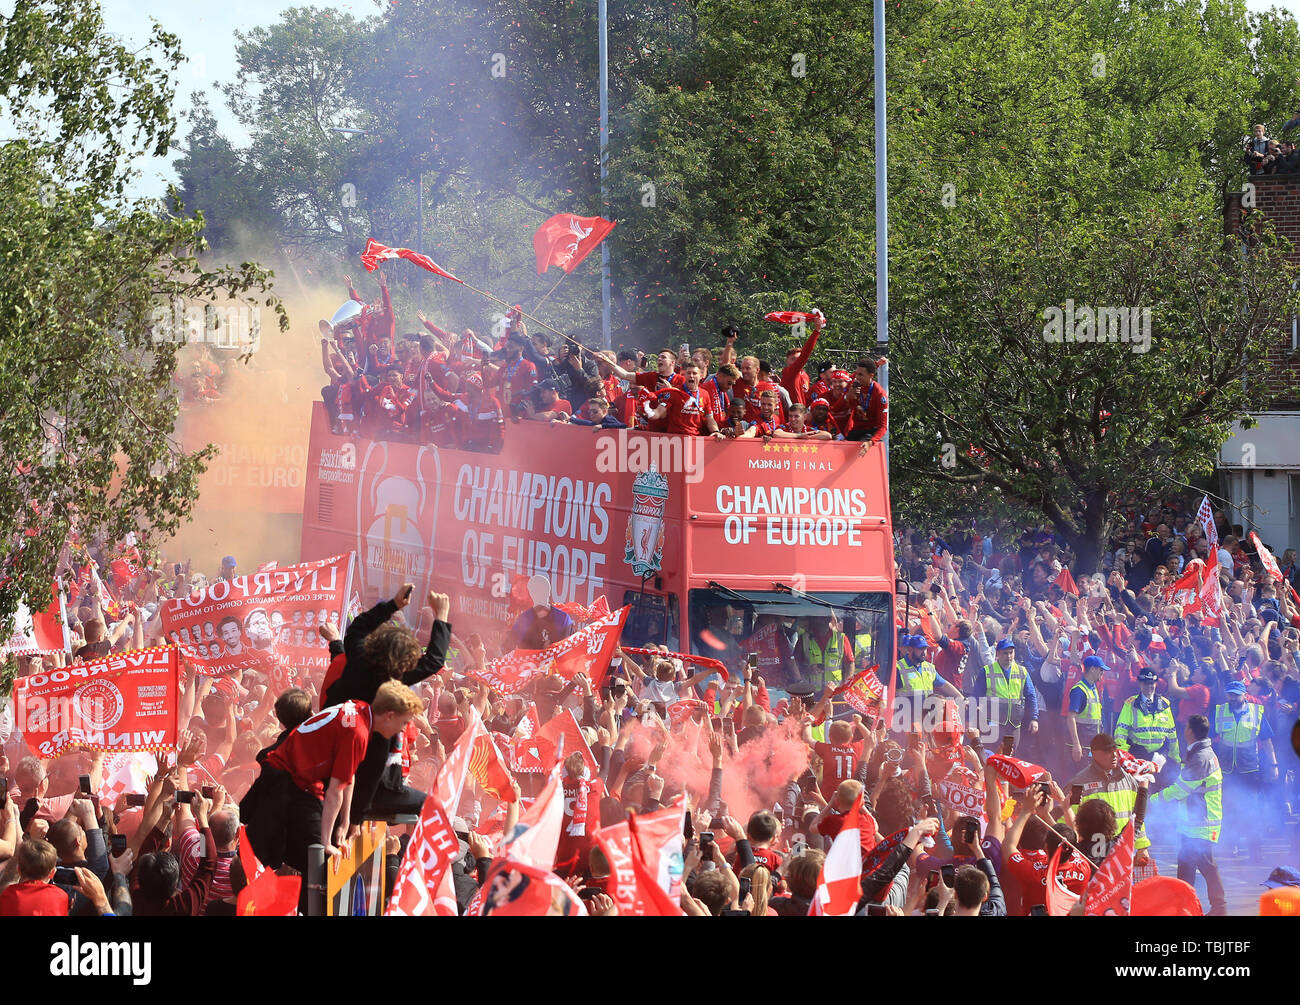 Liverpool, Merseyside. 2nd June, 2019. Liverpool FC celebration parade after their Champions League final win over Tottenham Hotspur in Madrid on 1st June; the Liverpool open top bus negotiates the Childwall Fiveways roundabout surrounded by a sea of fans Credit: Action Plus Sports/Alamy Live News Stock Photo